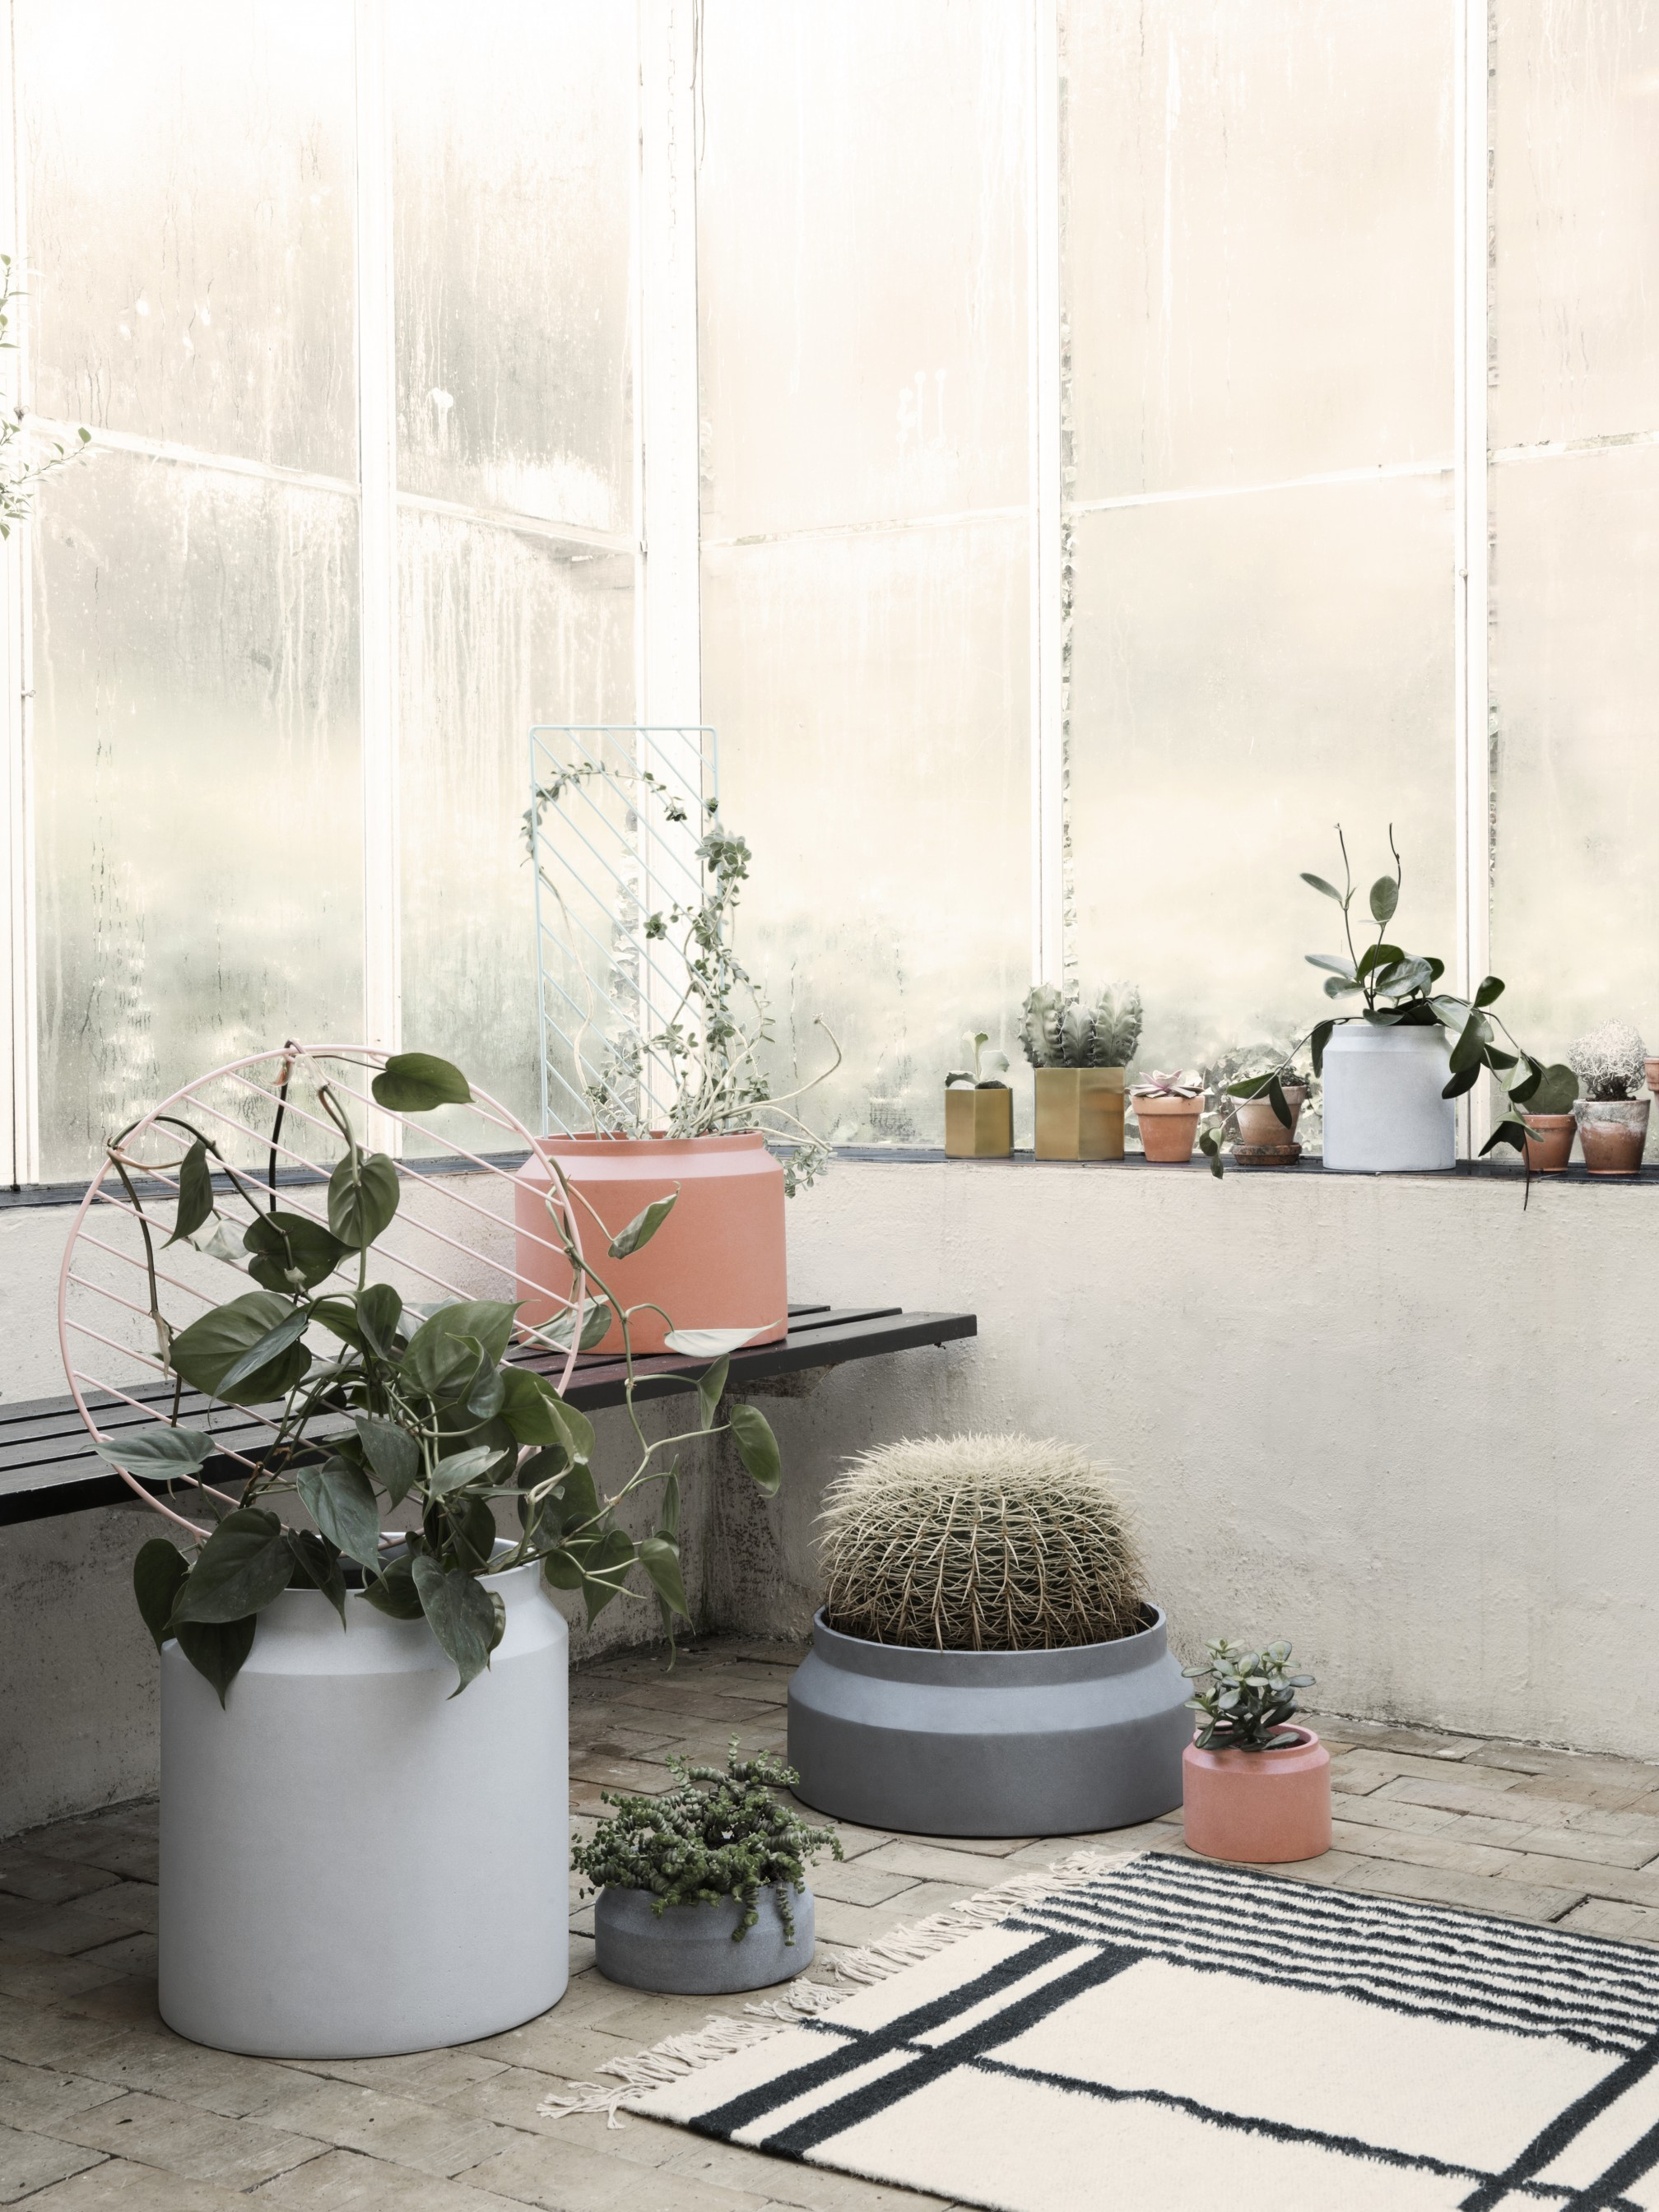 Ferm Living SS15 catalouge new pots and lots of green living from them this season.